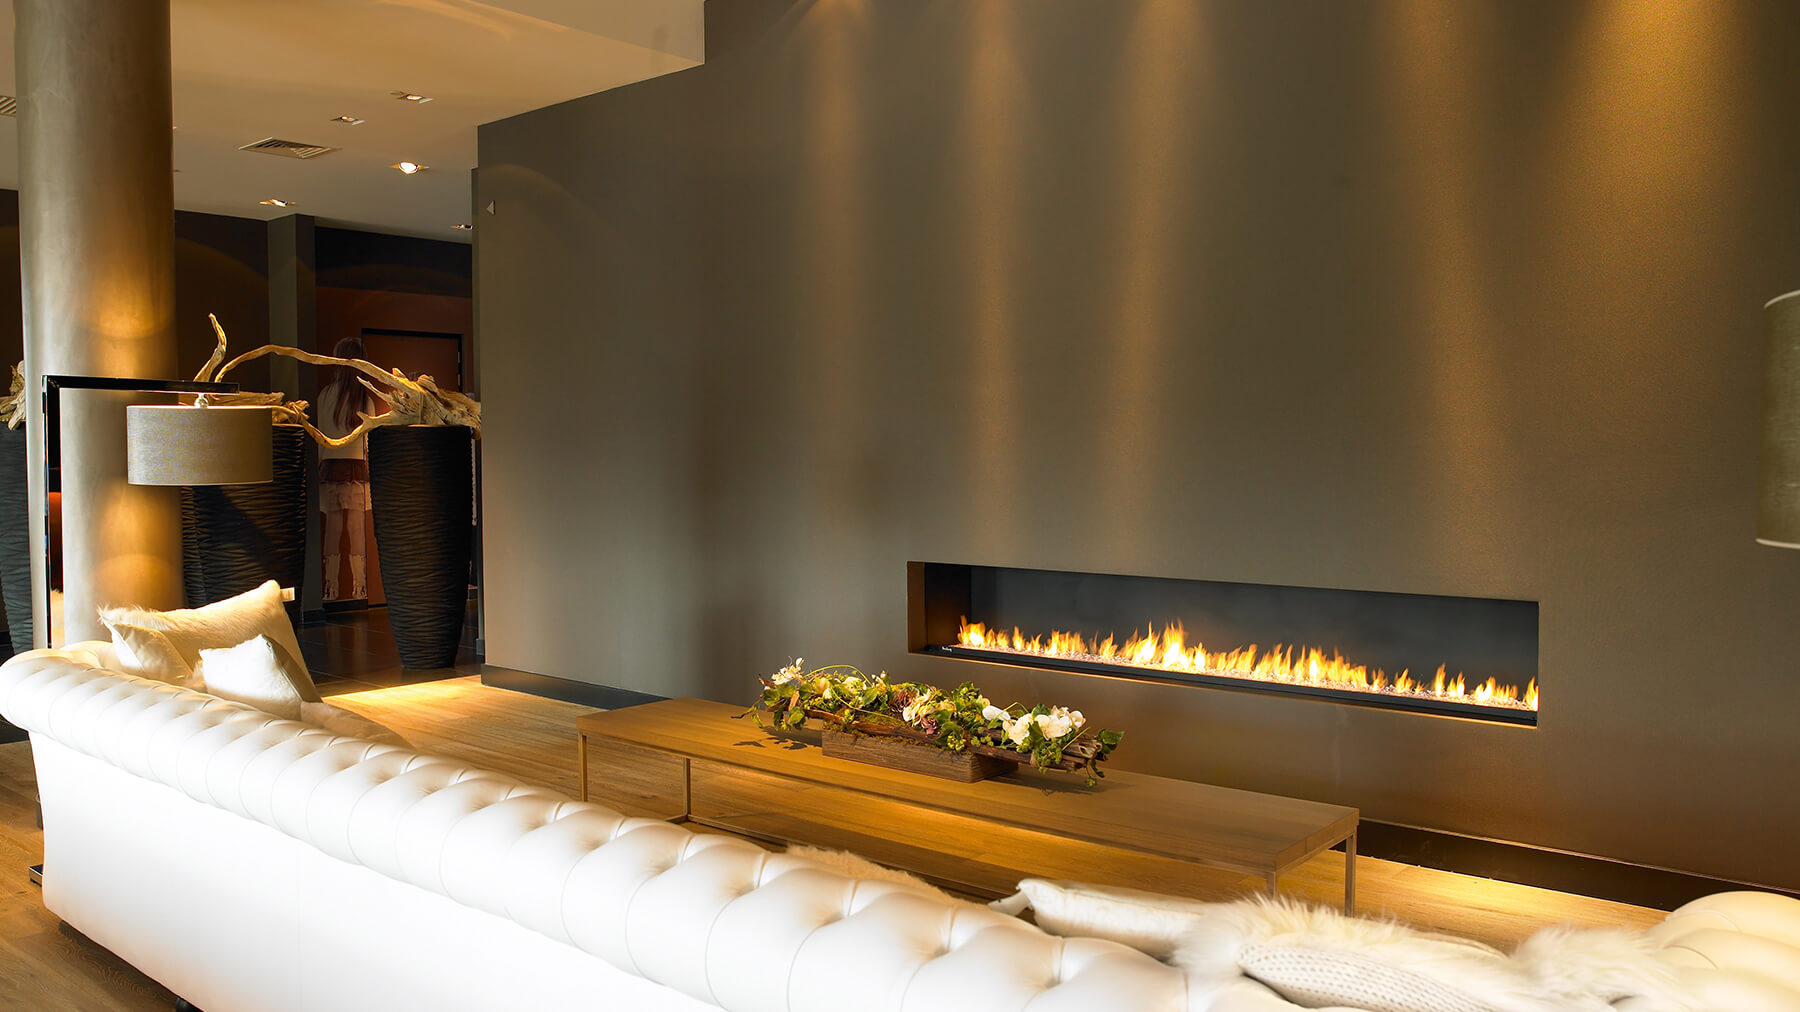 In-wall Gas Fireplace Insert Installation & Gas Line Hooku-up in Massachusetts